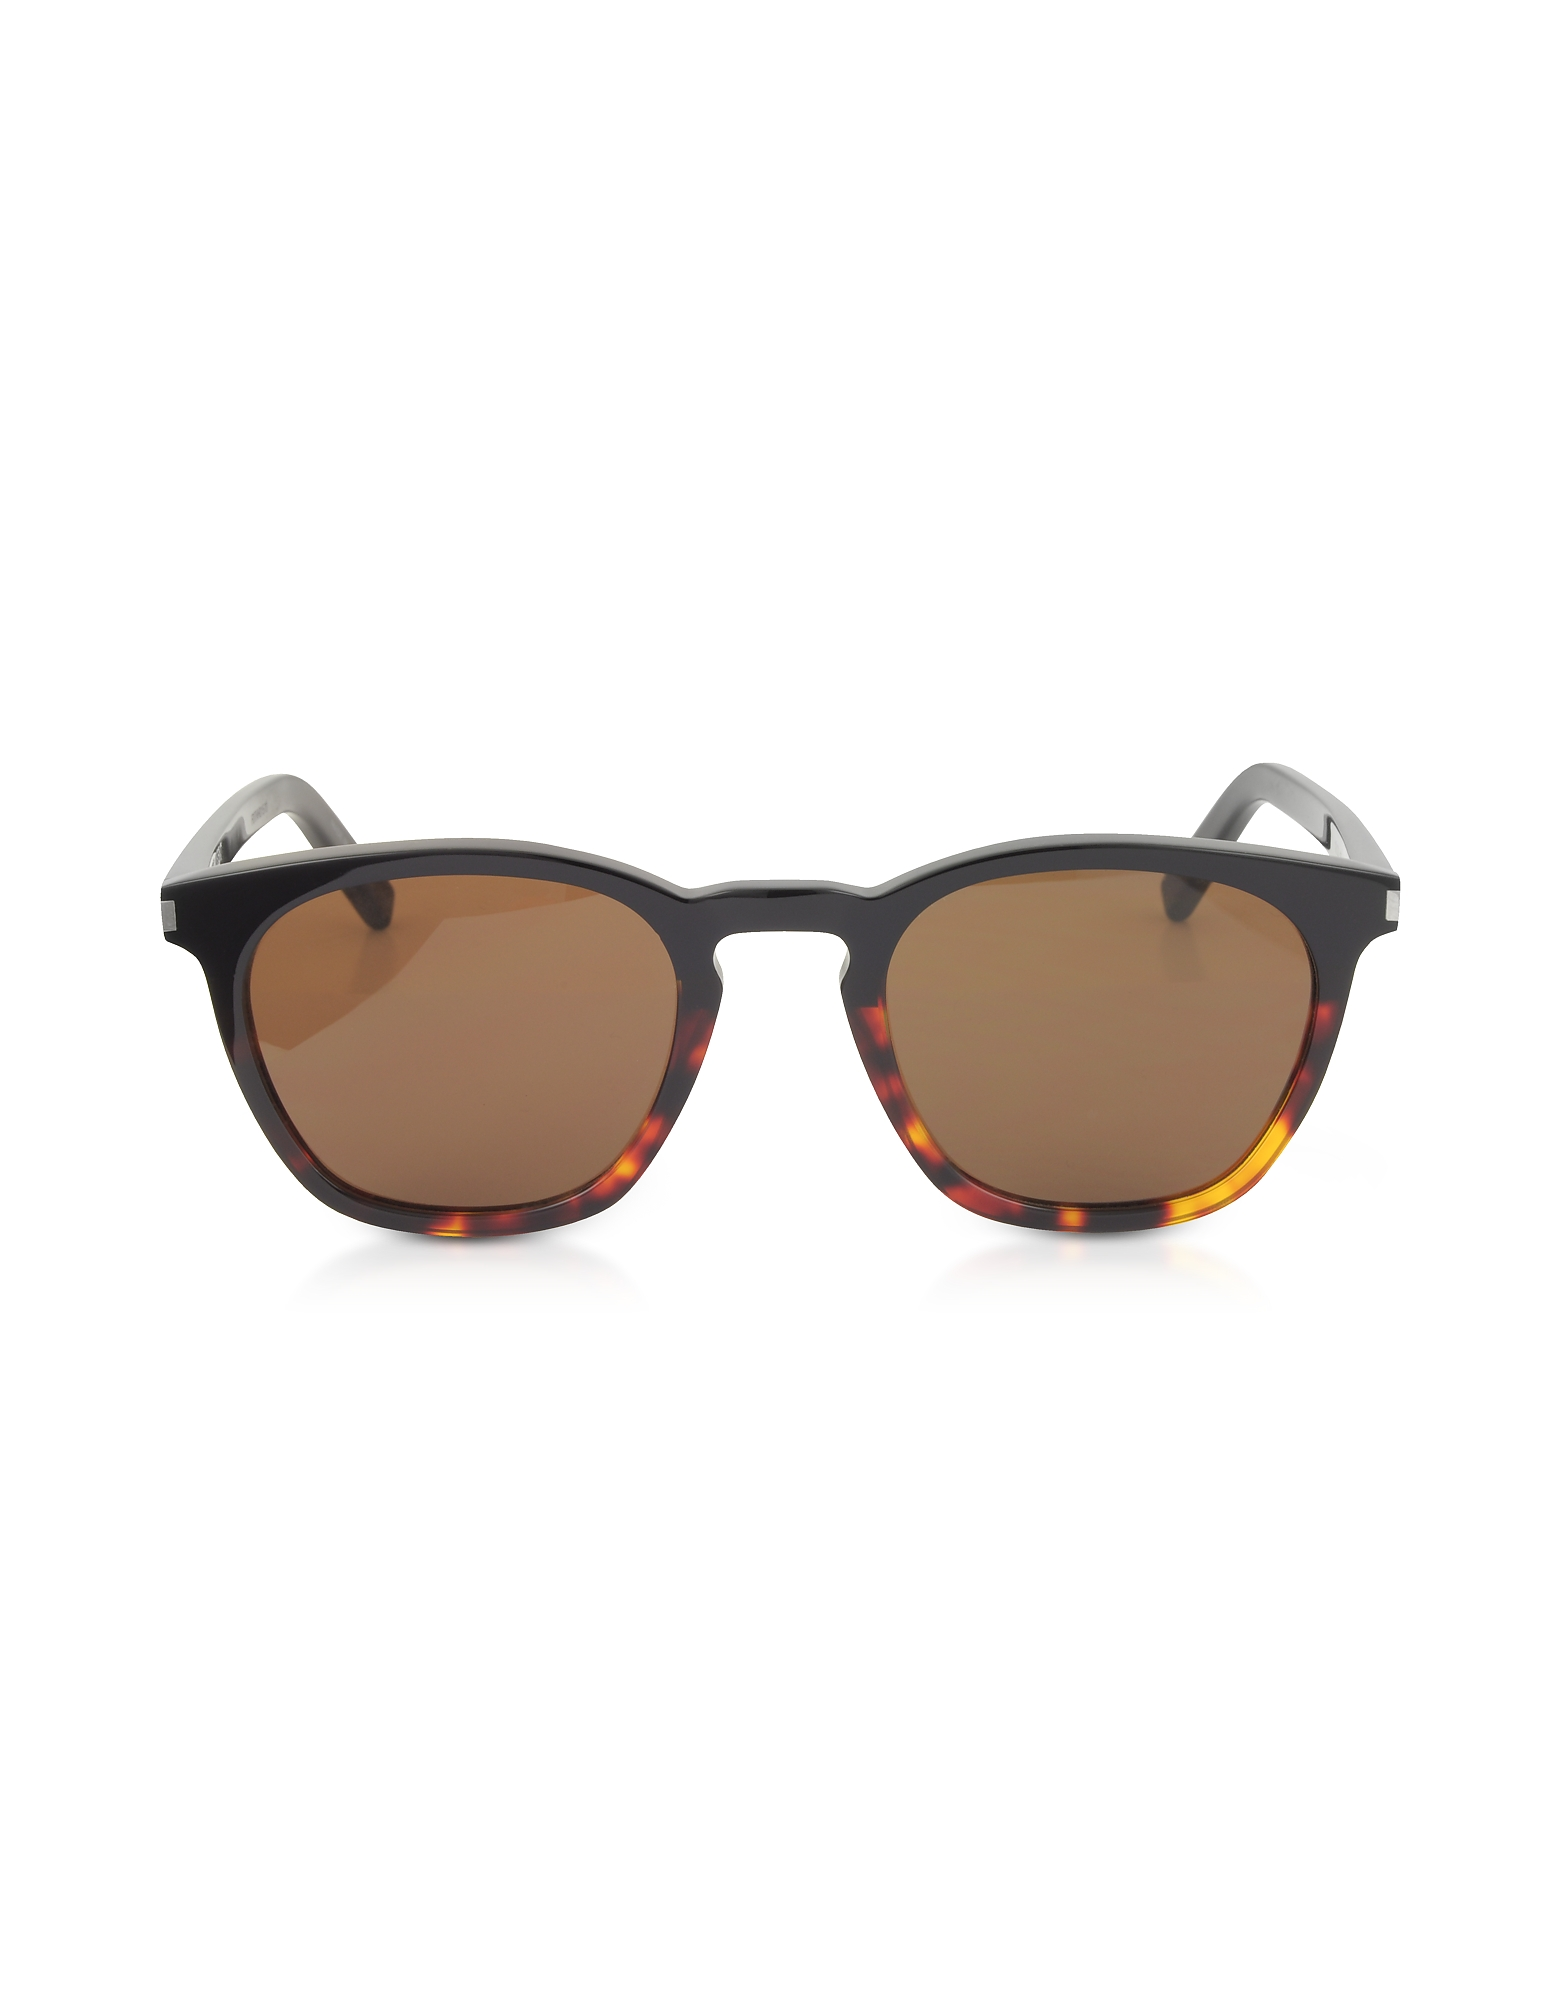 Saint Laurent Sunglasses, SL 28 Two-Tone Acetate Frame Sunglasses